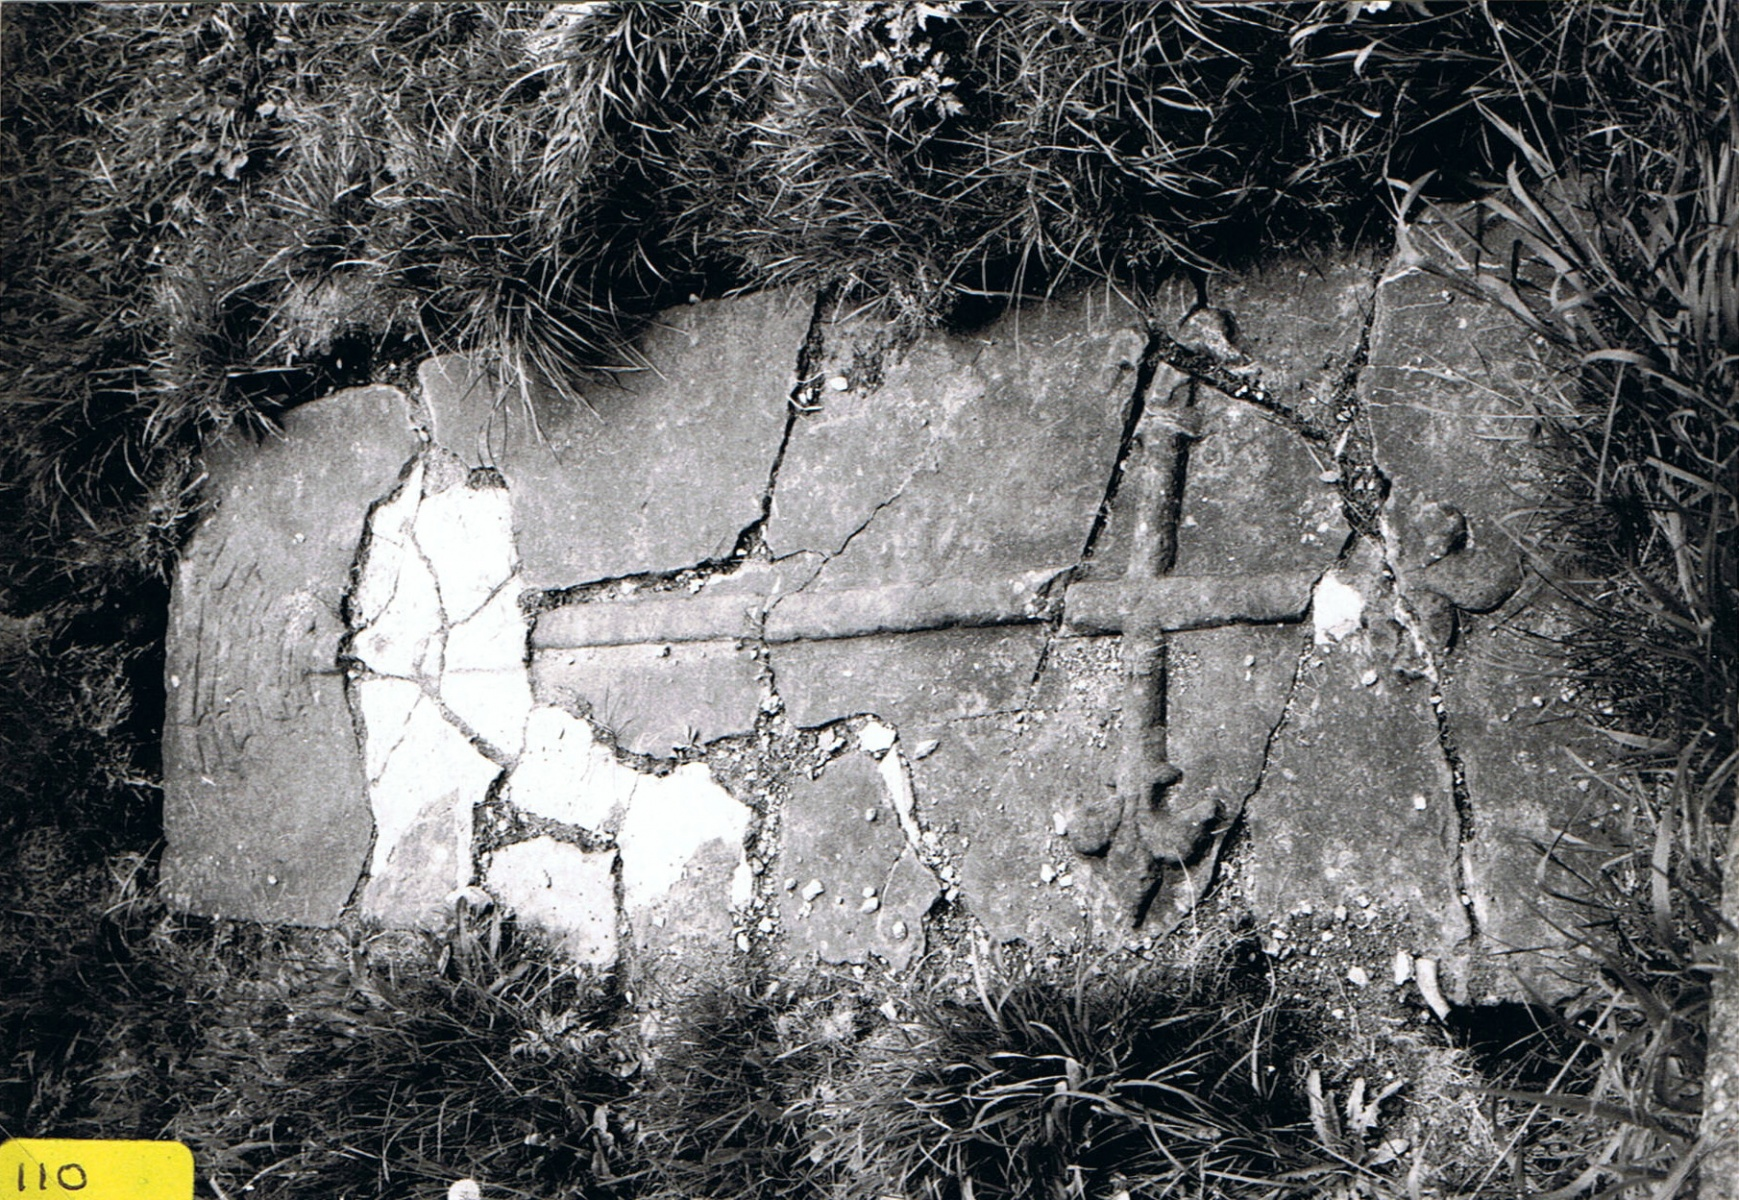 12th/13th centuries. Tomb slab near church porch. Originally uncovered in 1851 while digging foundations for extension to church.